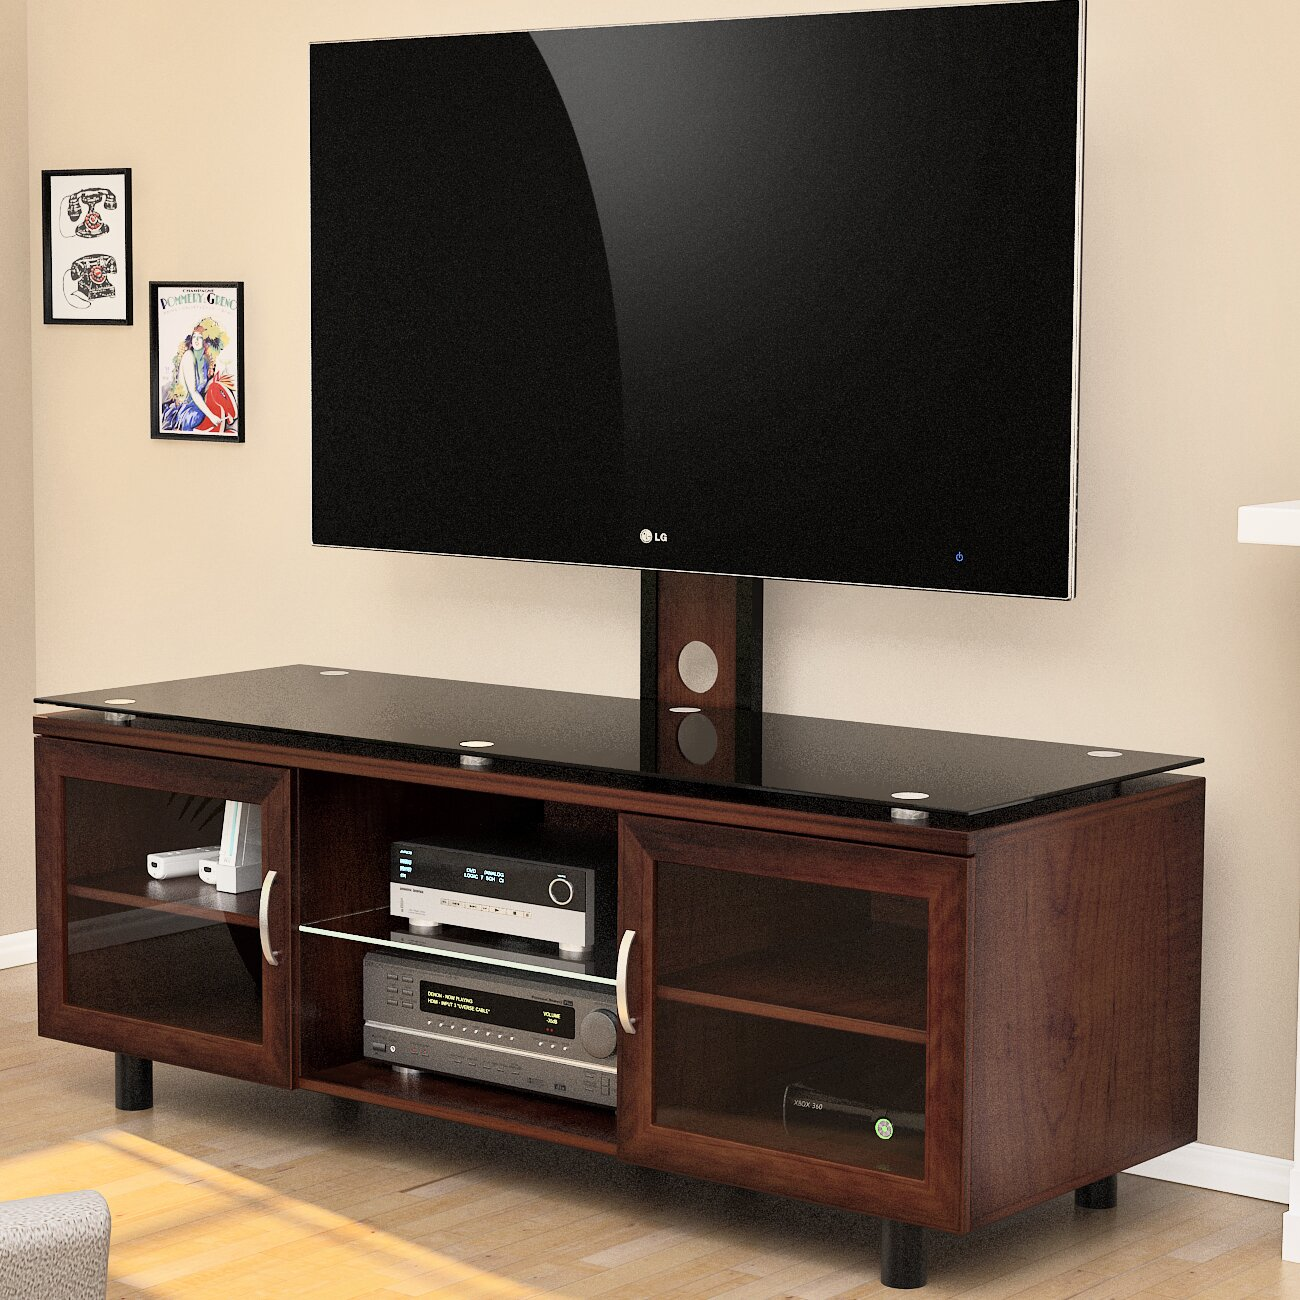 Tv Stand Designs And Price : Z line designs quinn in tv mount system reviews